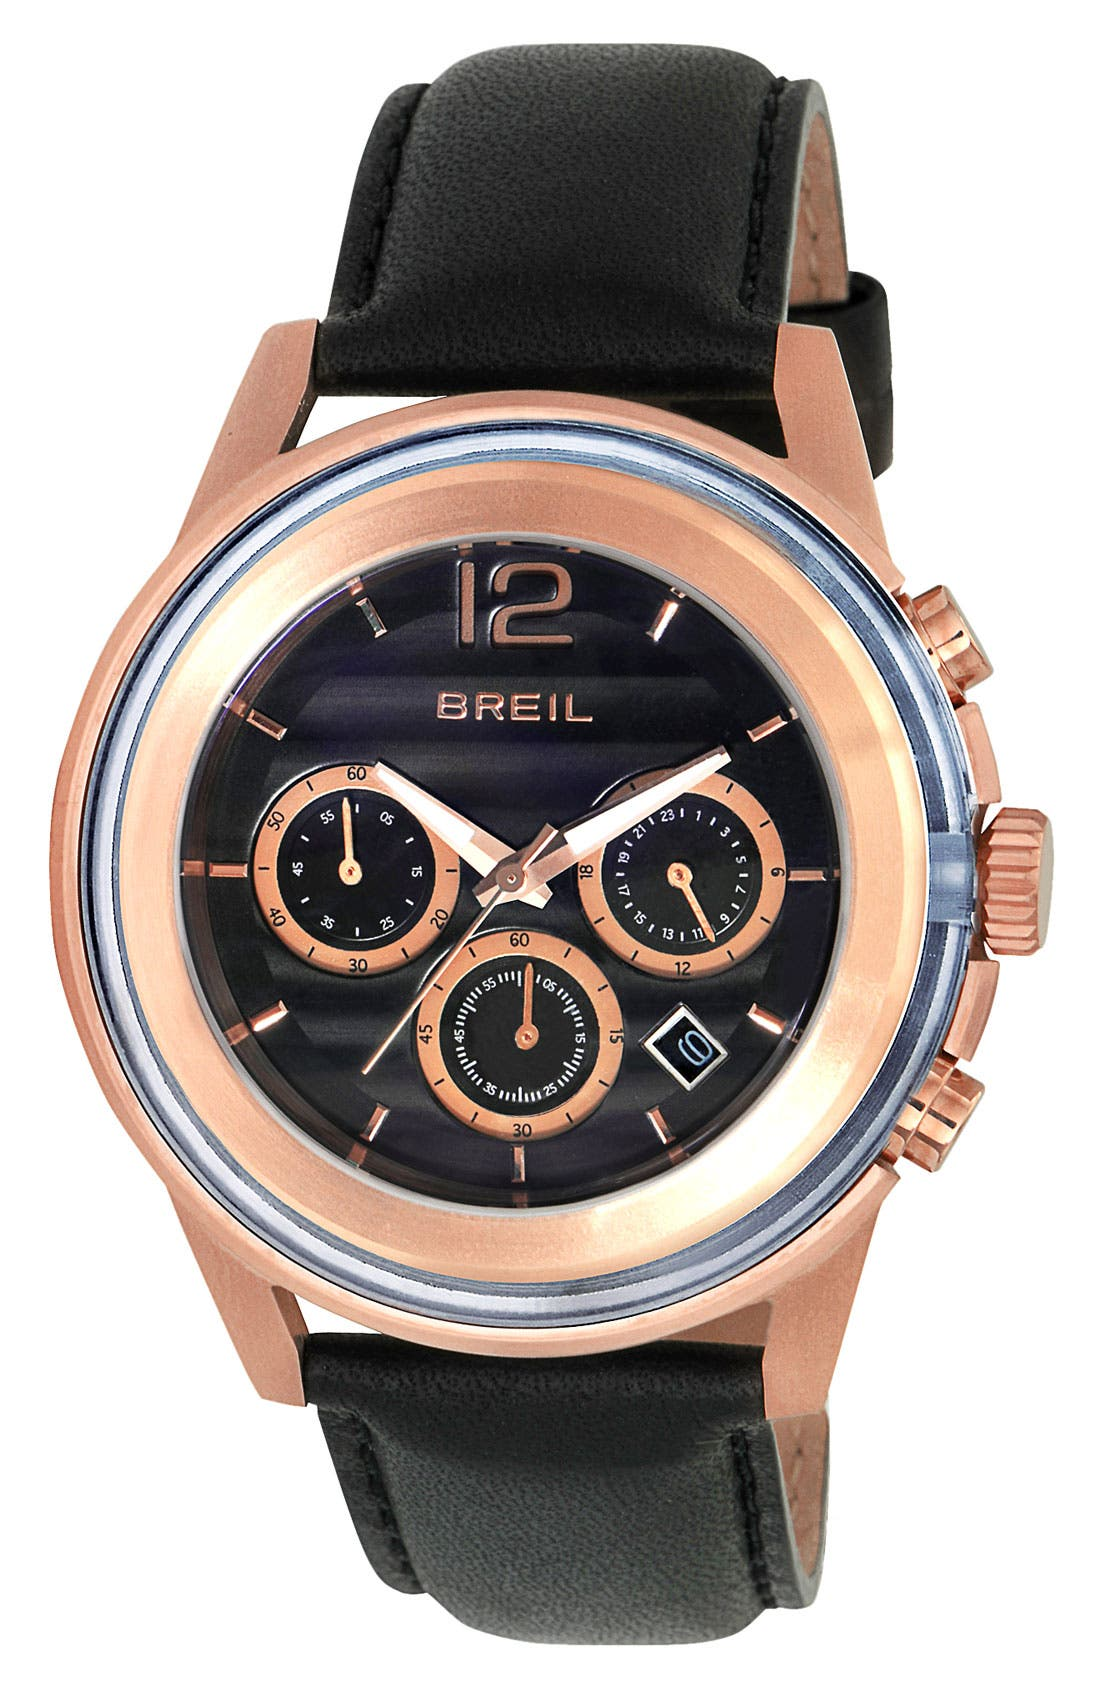 Main Image - Breil 'Orchestra' Chronograph Leather Strap Watch, 45mm